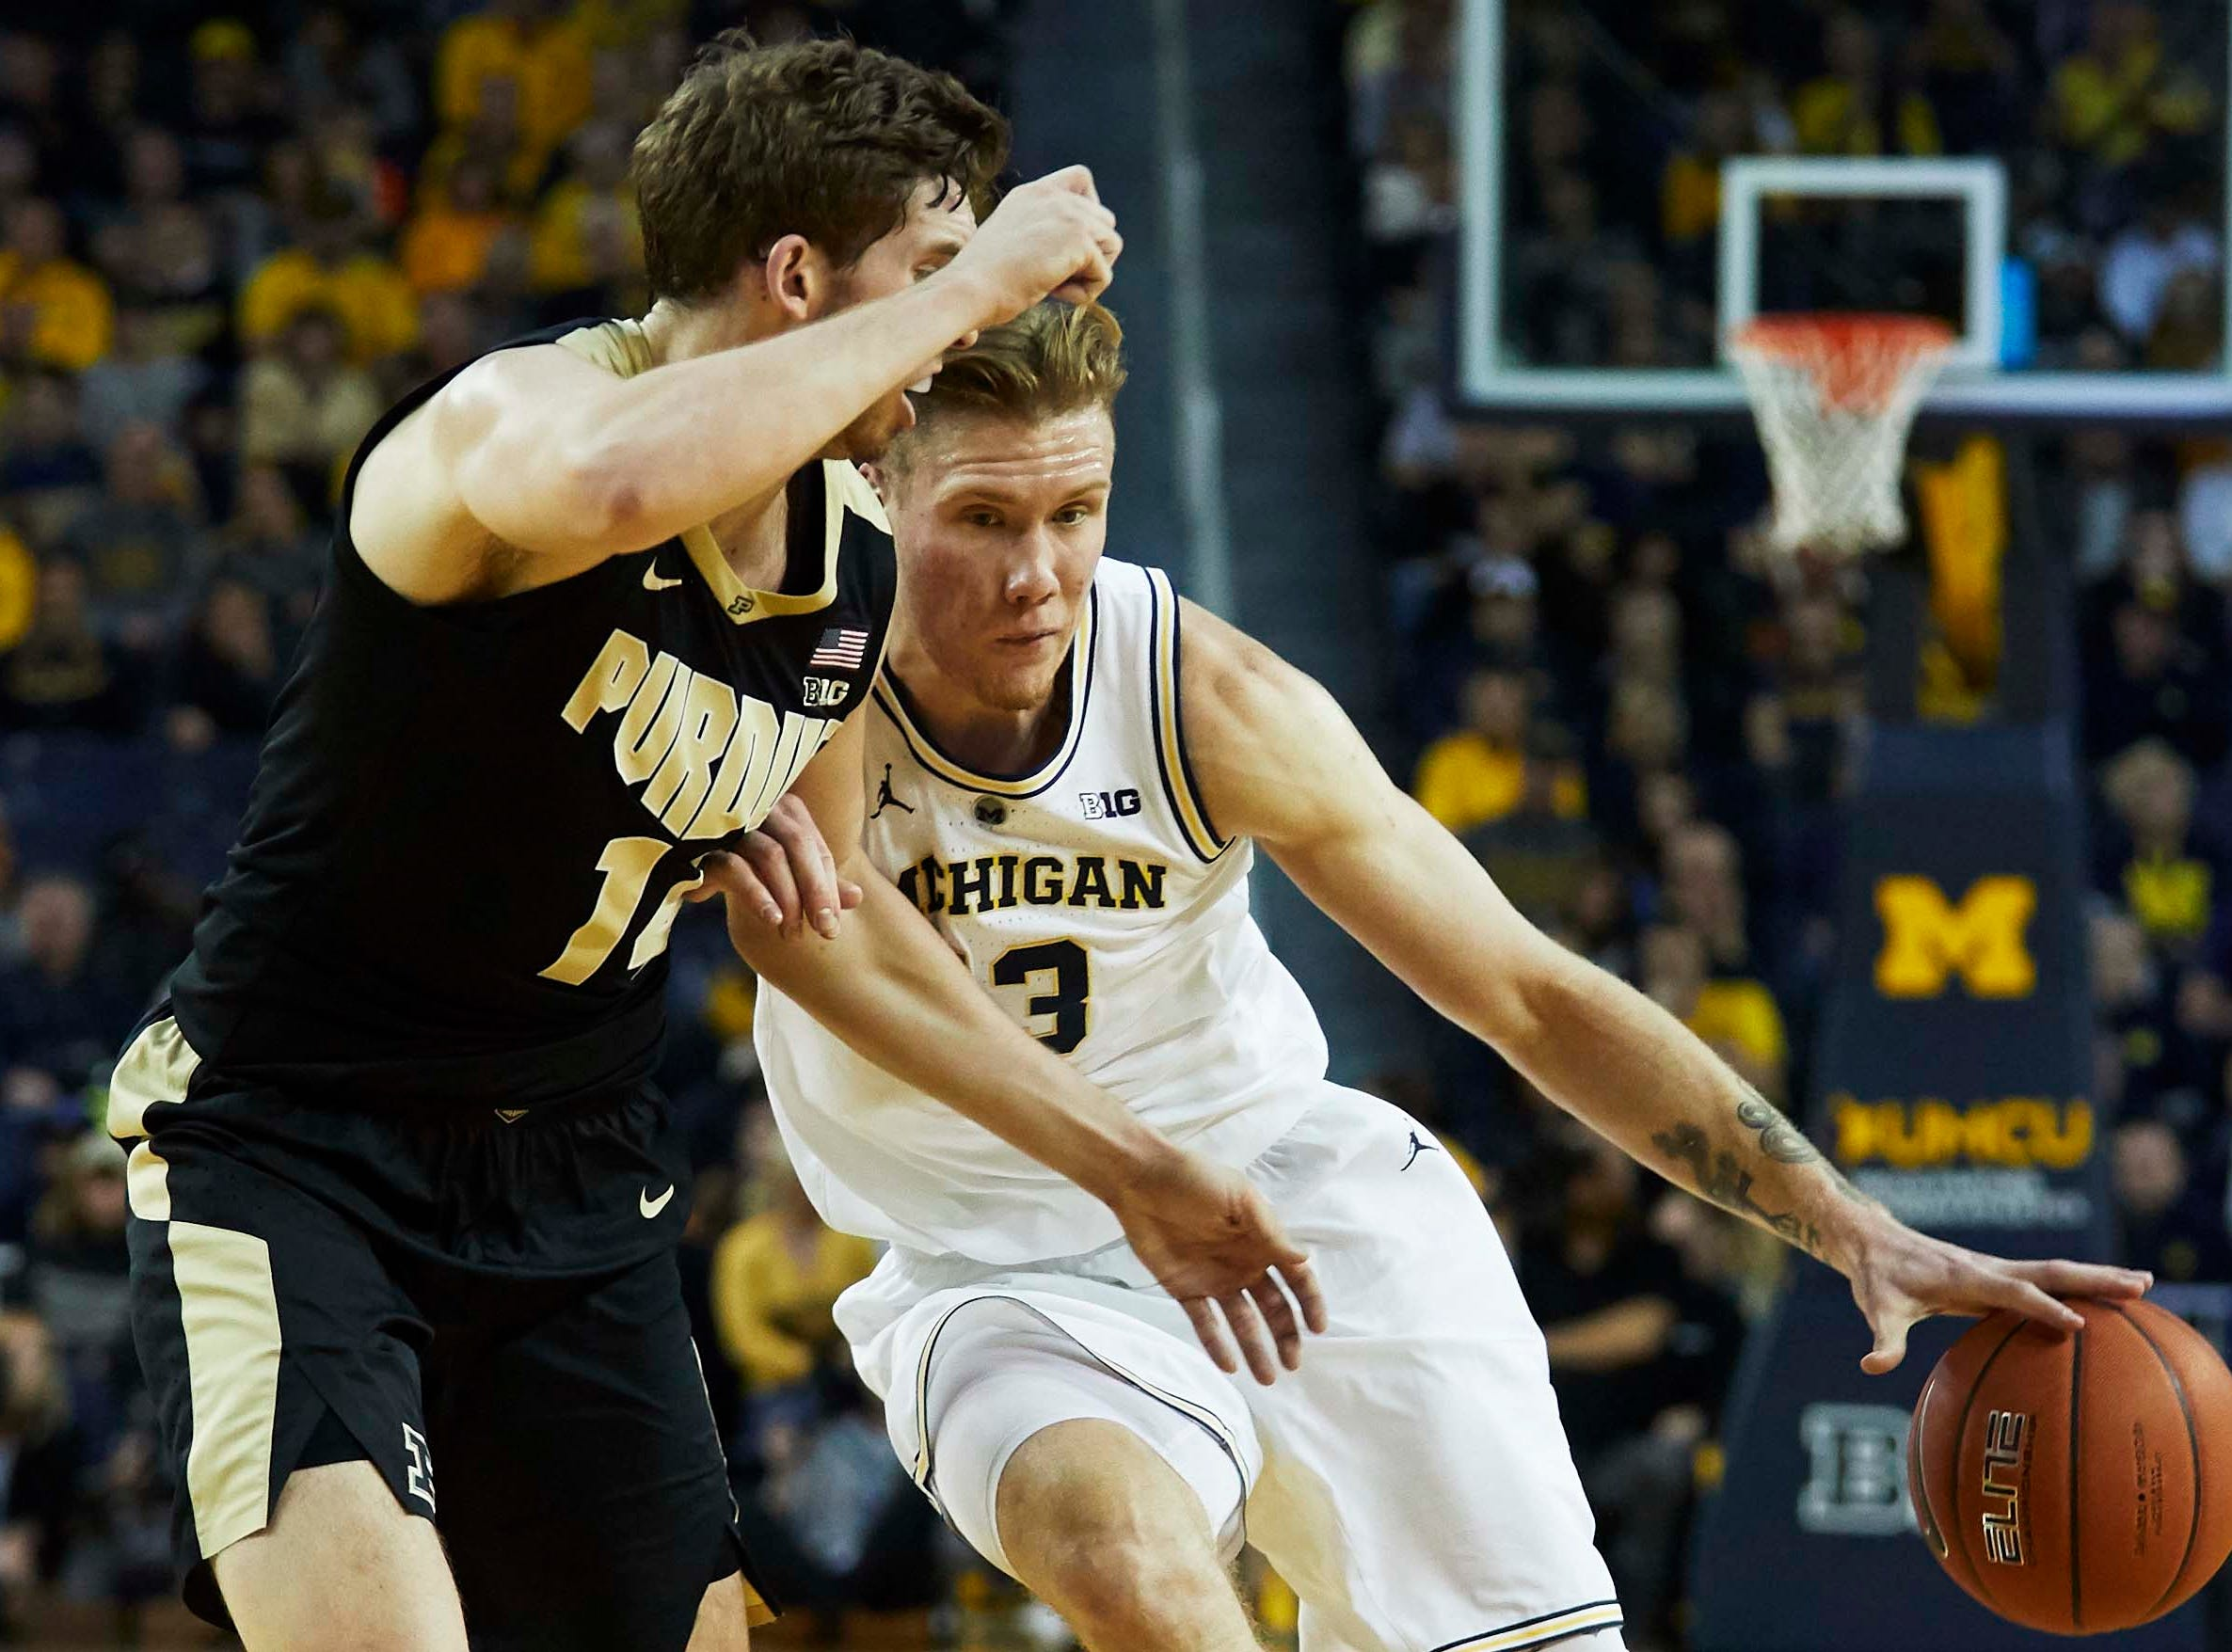 Dec 1, 2018; Ann Arbor, MI, USA; Michigan Wolverines forward Ignas Brazdeikis (13) dribbles defended by Purdue Boilermakers guard Tommy Luce (15) at Crisler Center. Mandatory Credit: Rick Osentoski-USA TODAY Sports